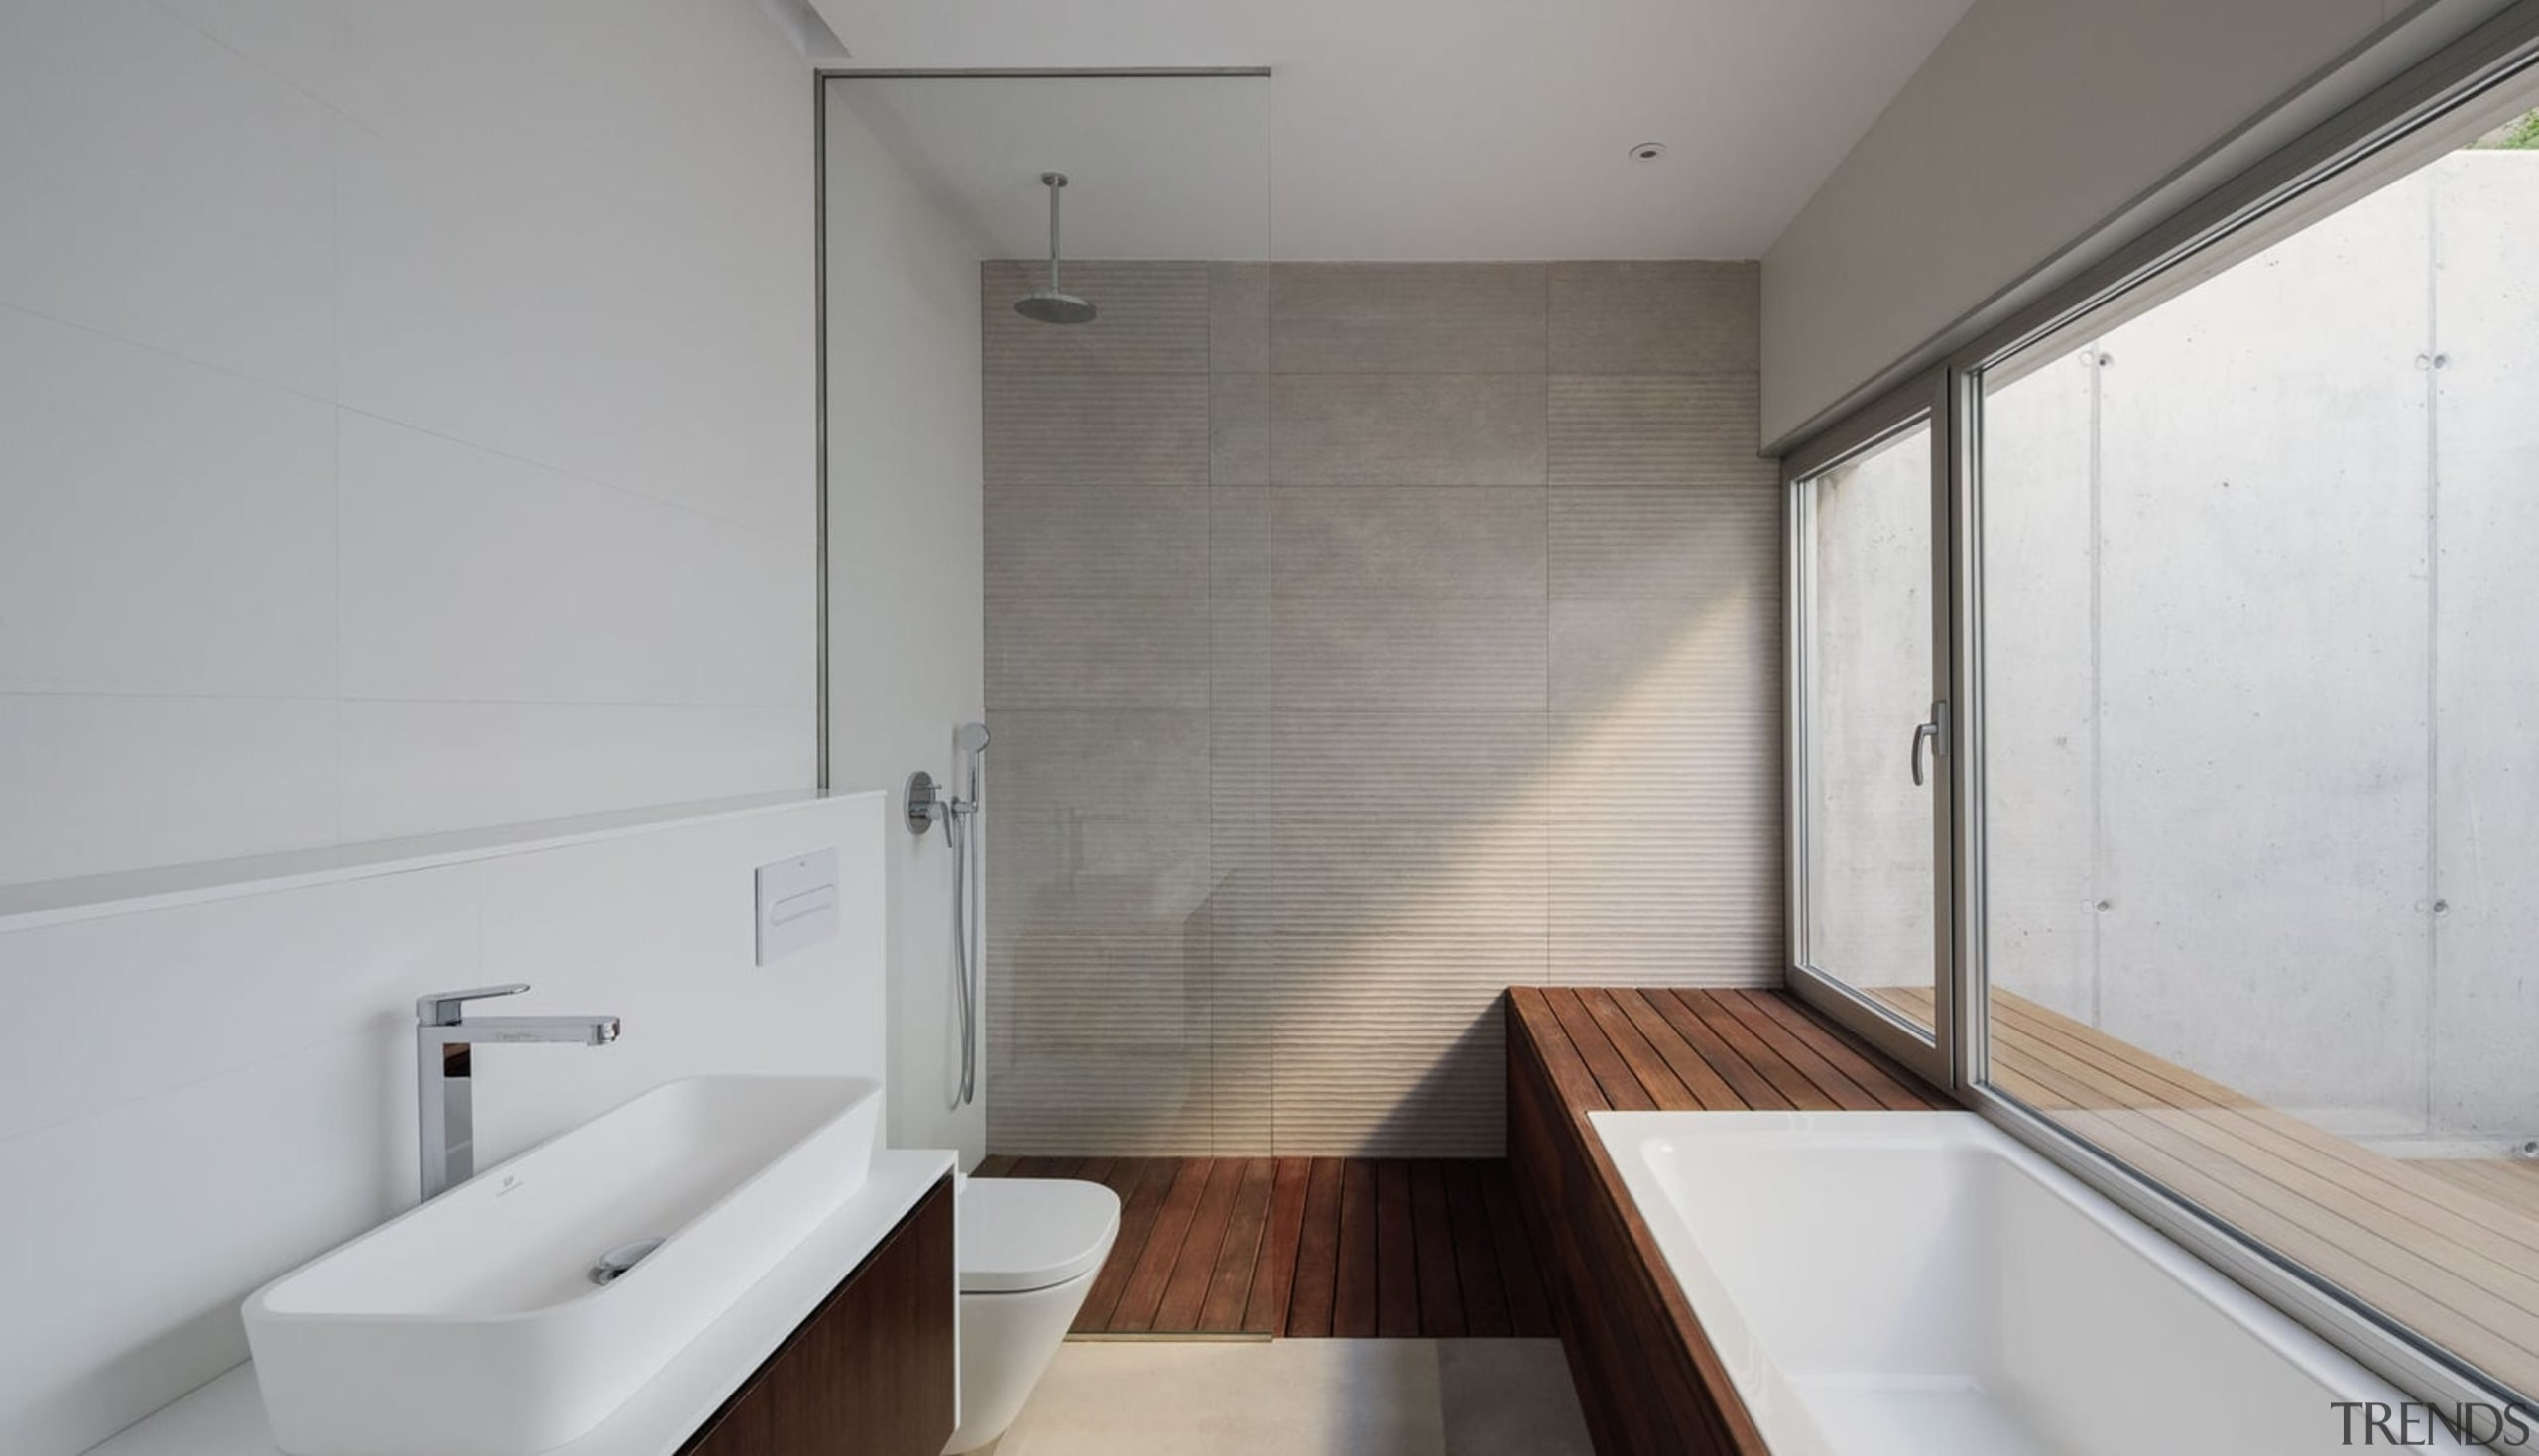 There's a raw materiality to this bathroom - architecture, bathroom, house, interior design, property, real estate, room, gray